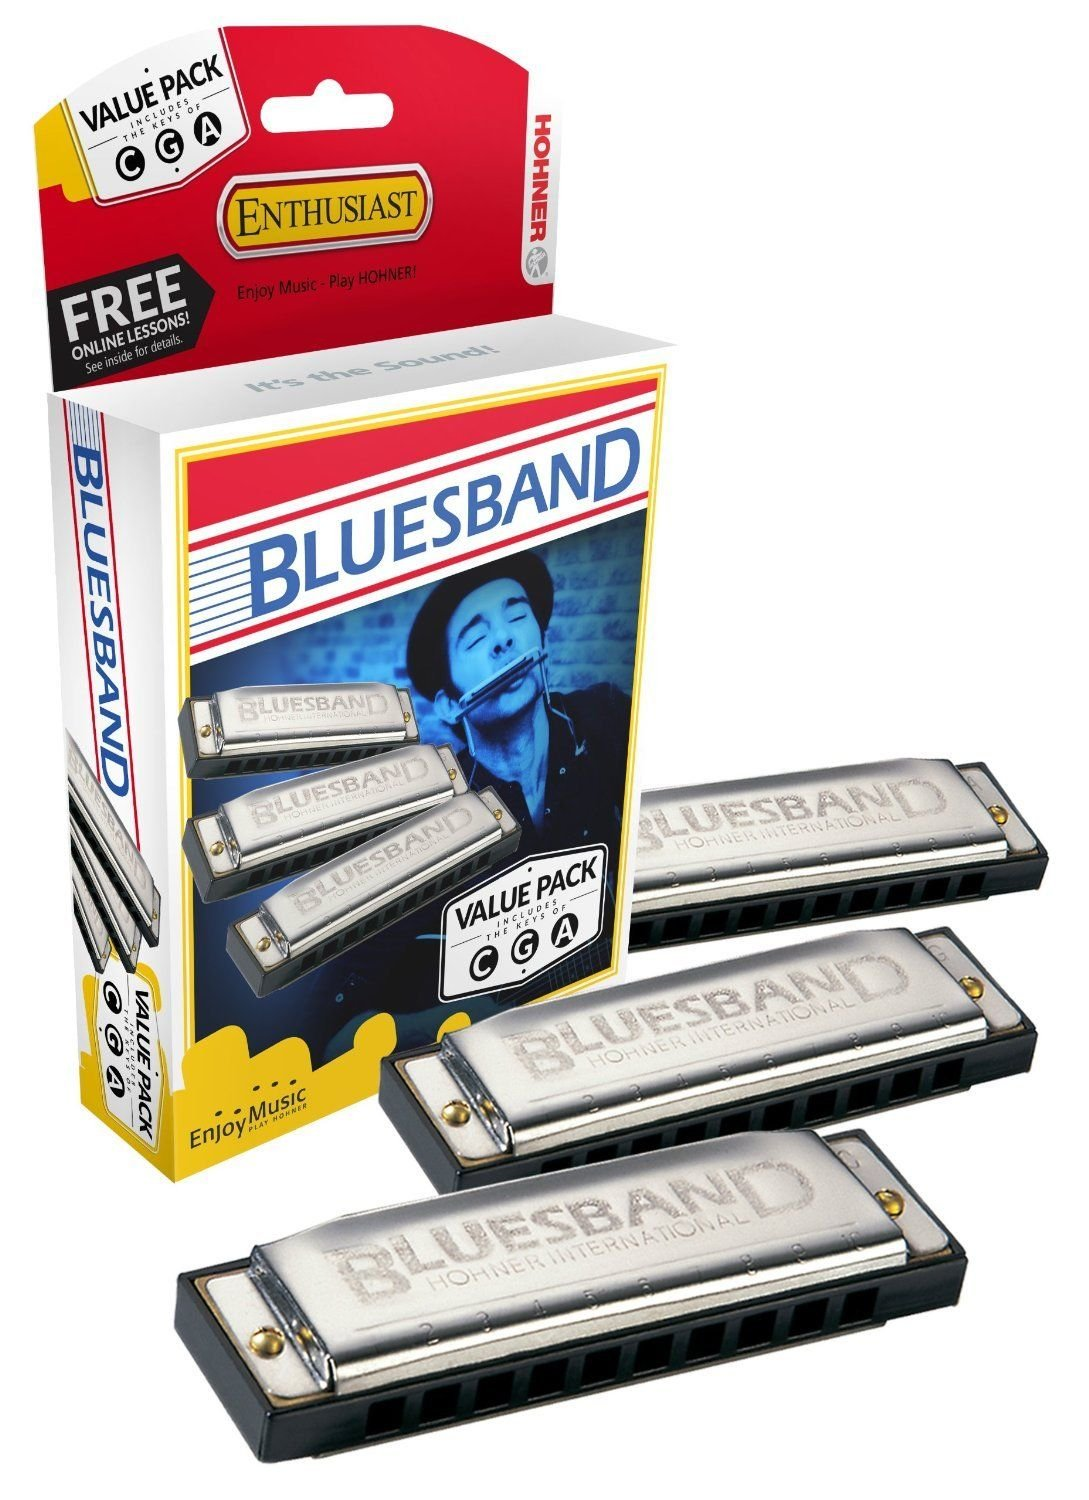 New Hohner Bluesband value pack Harmonicas